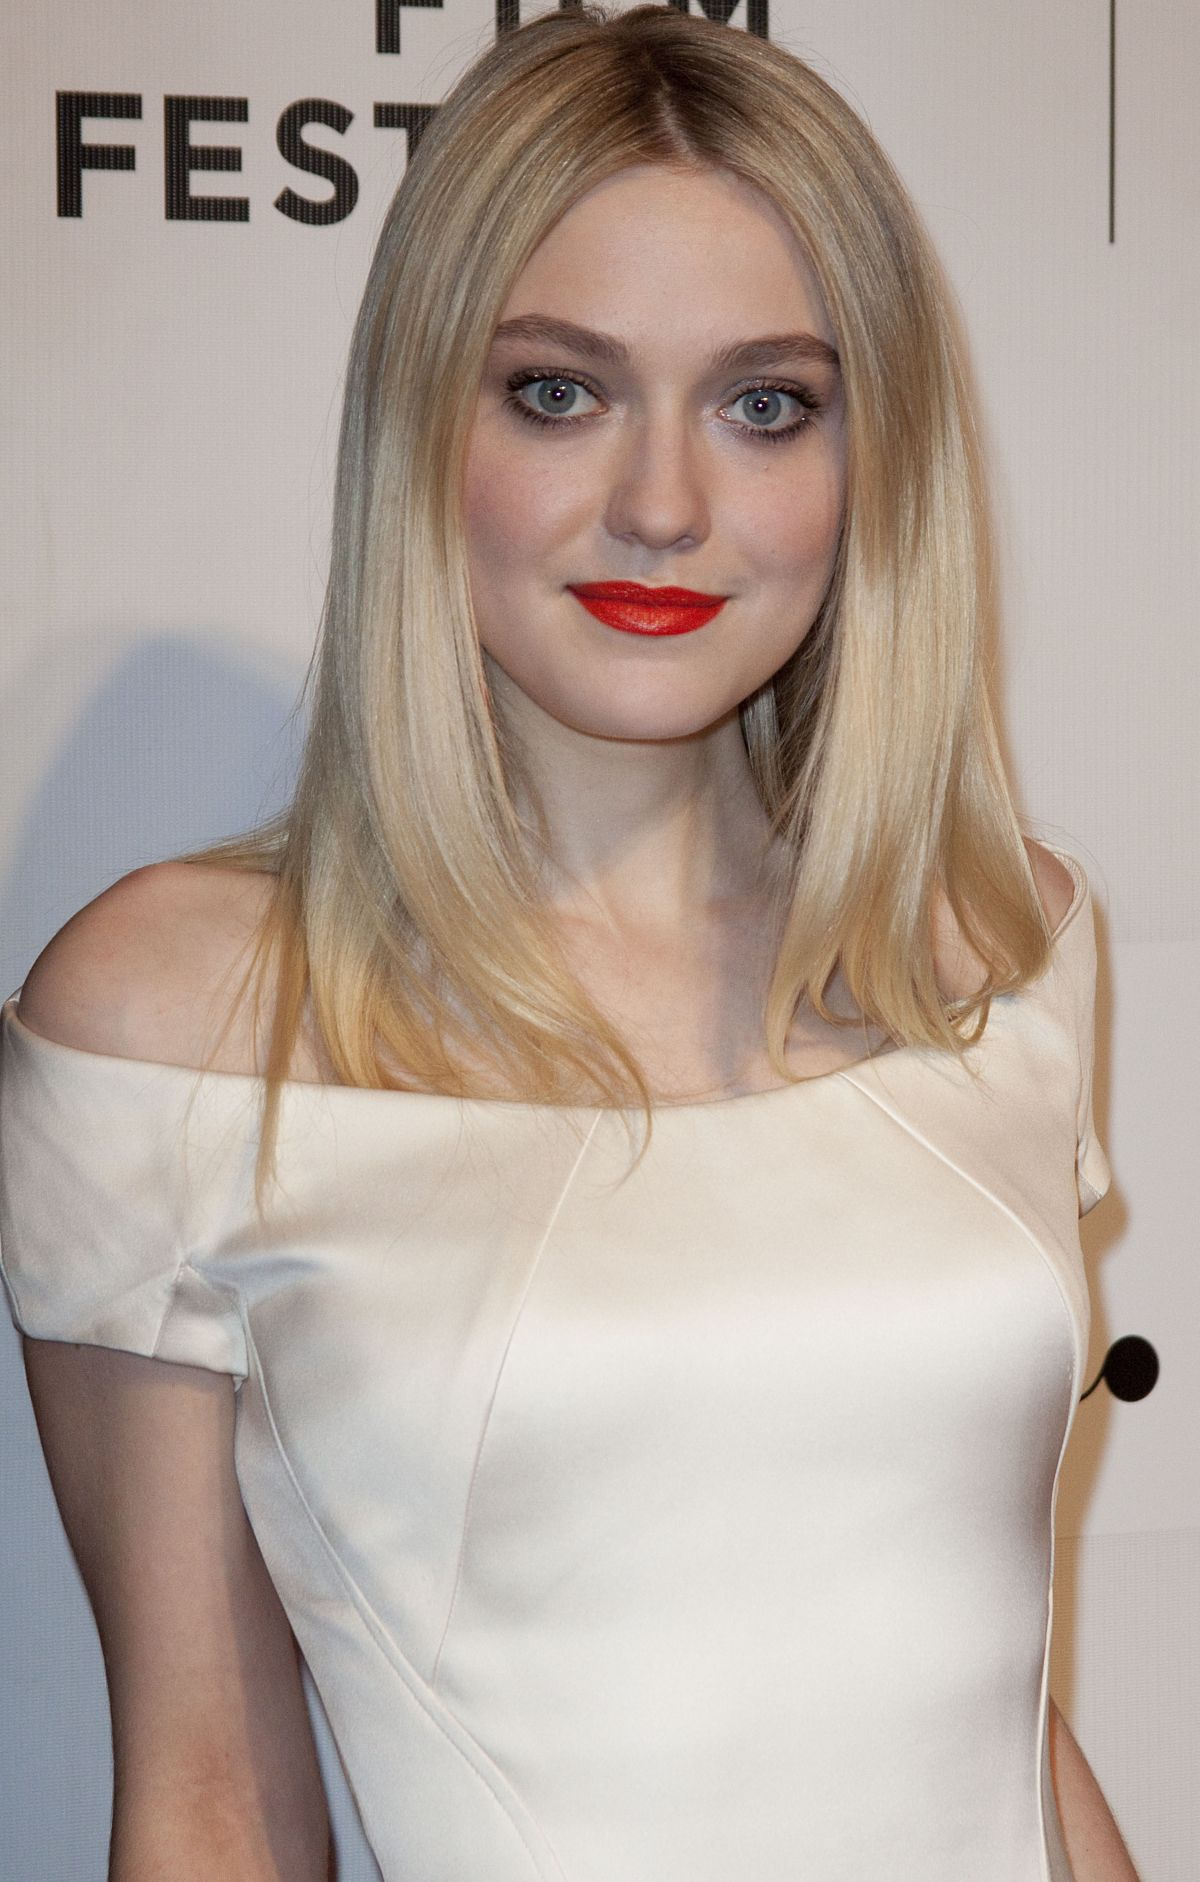 DAKOTA FANNING at Franny Premiere in New York